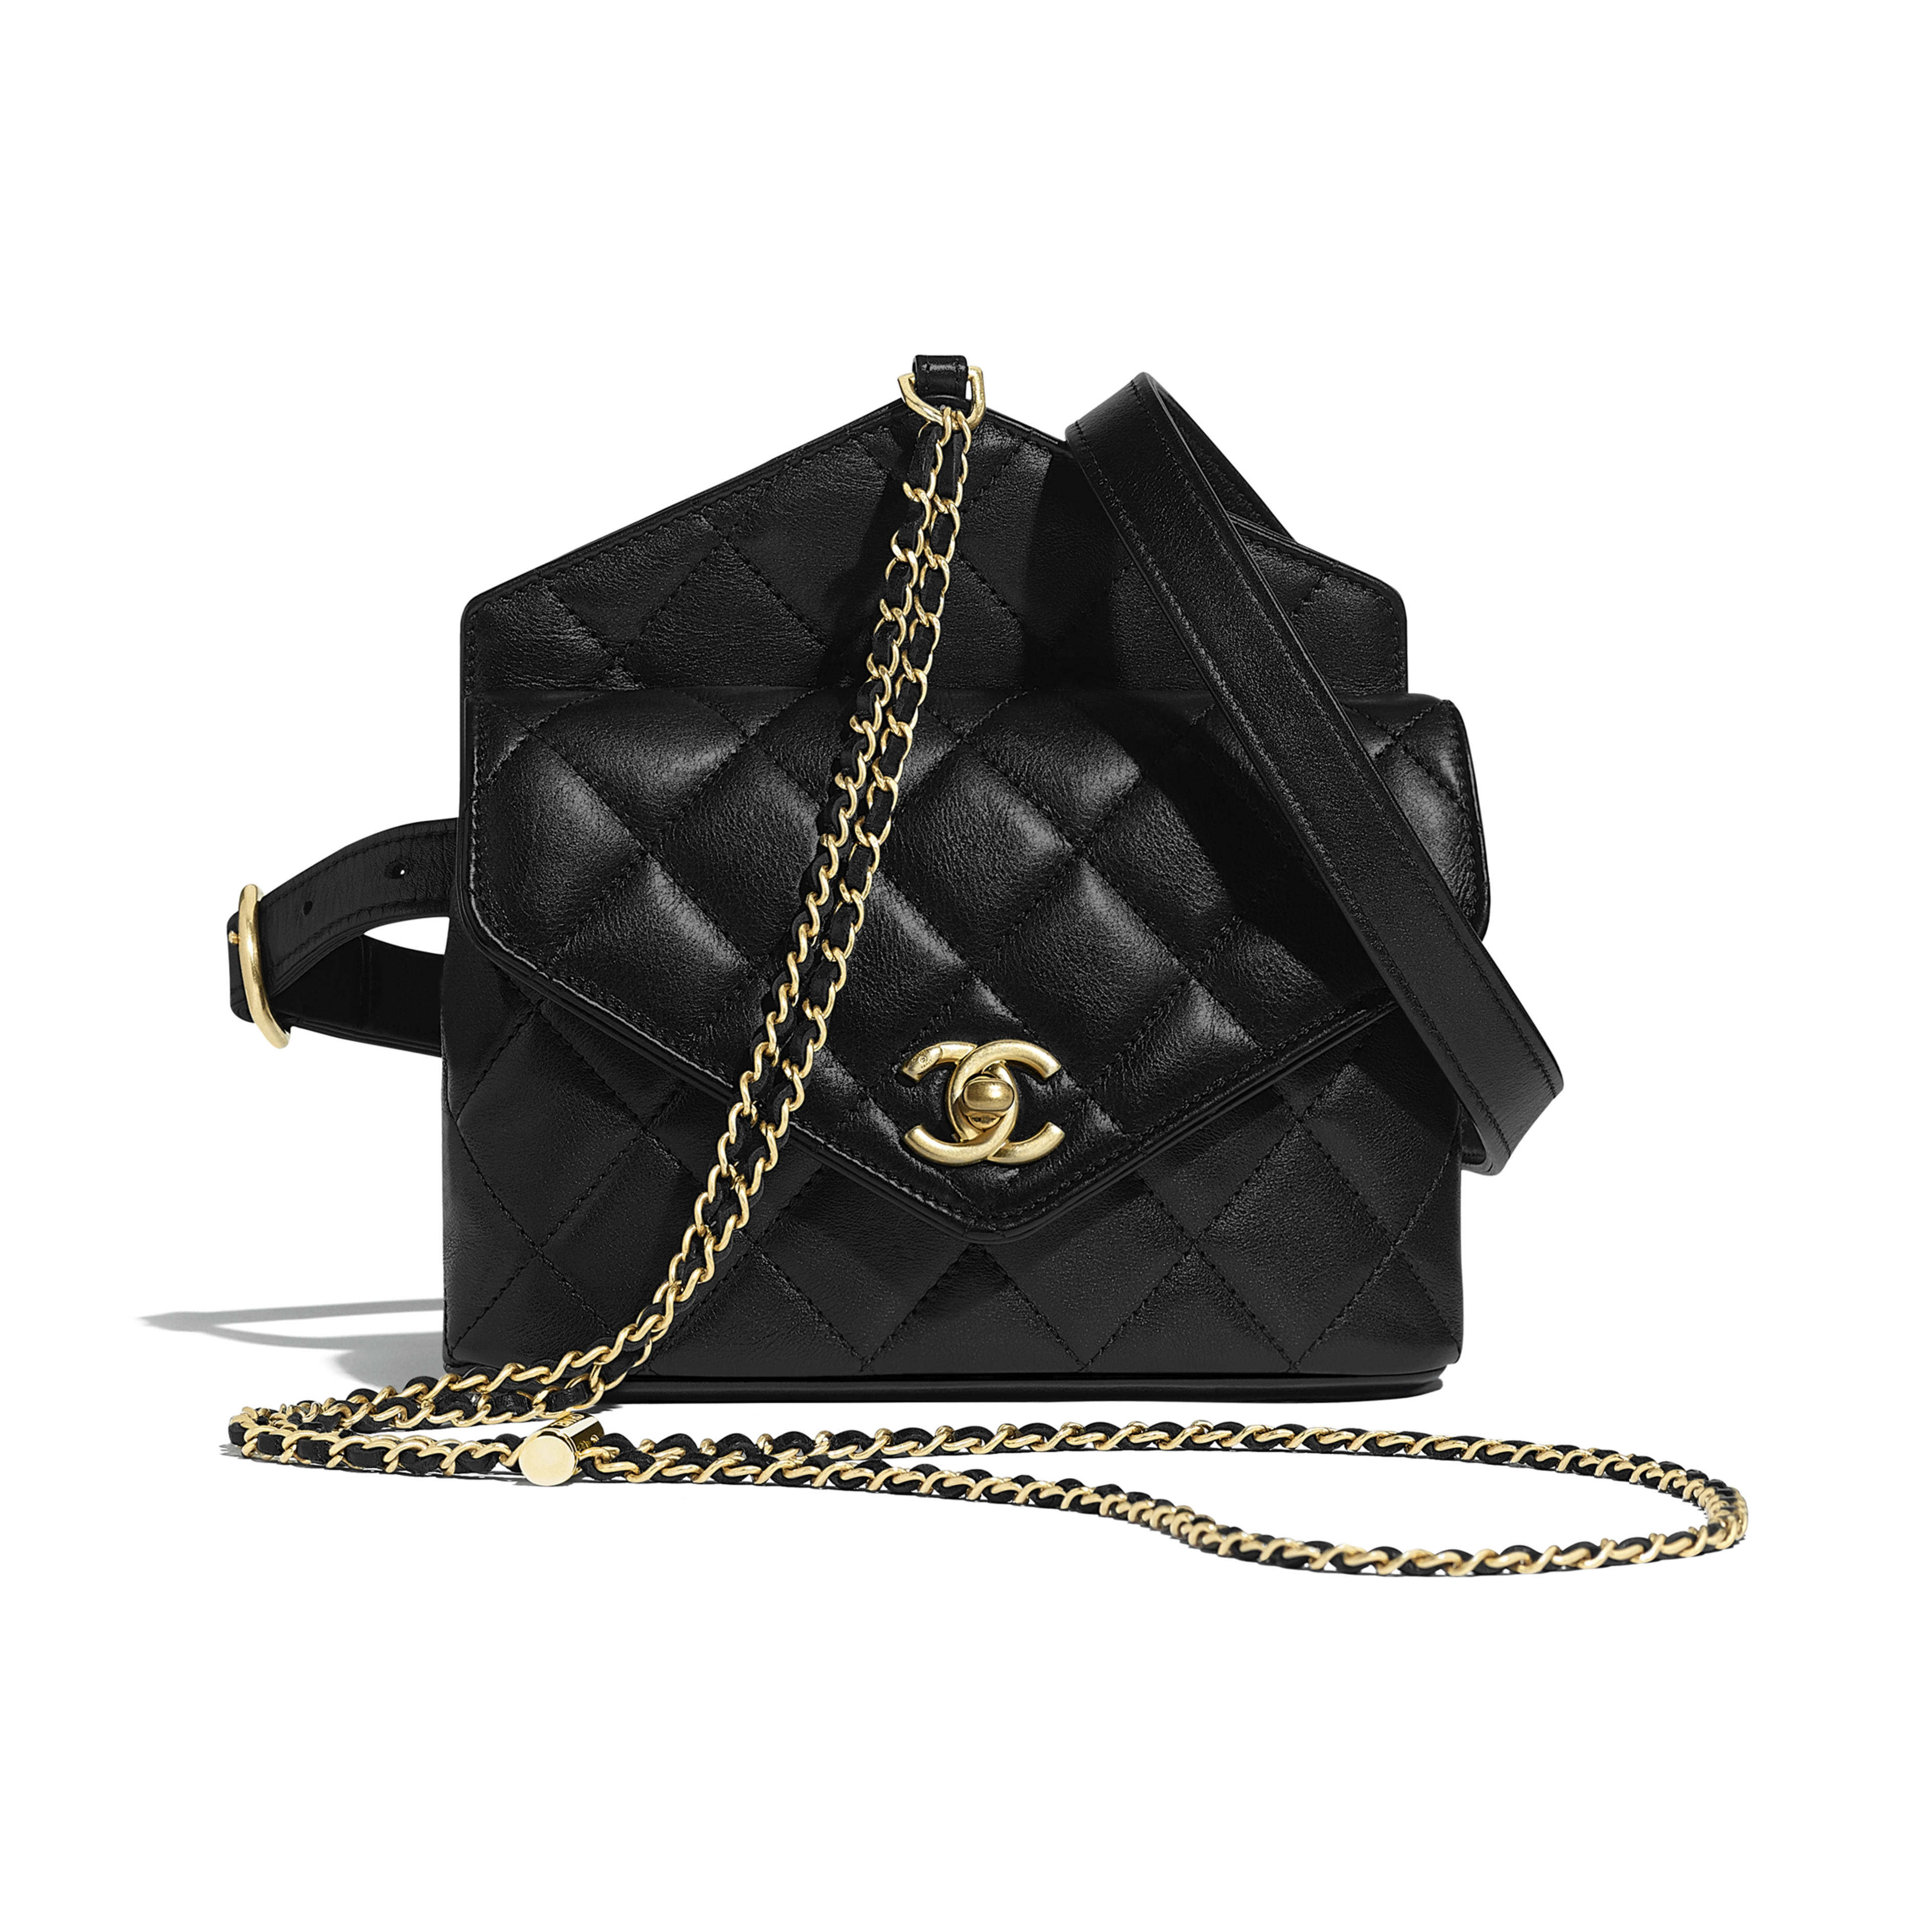 3 Beautiful Chanel Bags For 2019 (Including Prices) – Haya ...